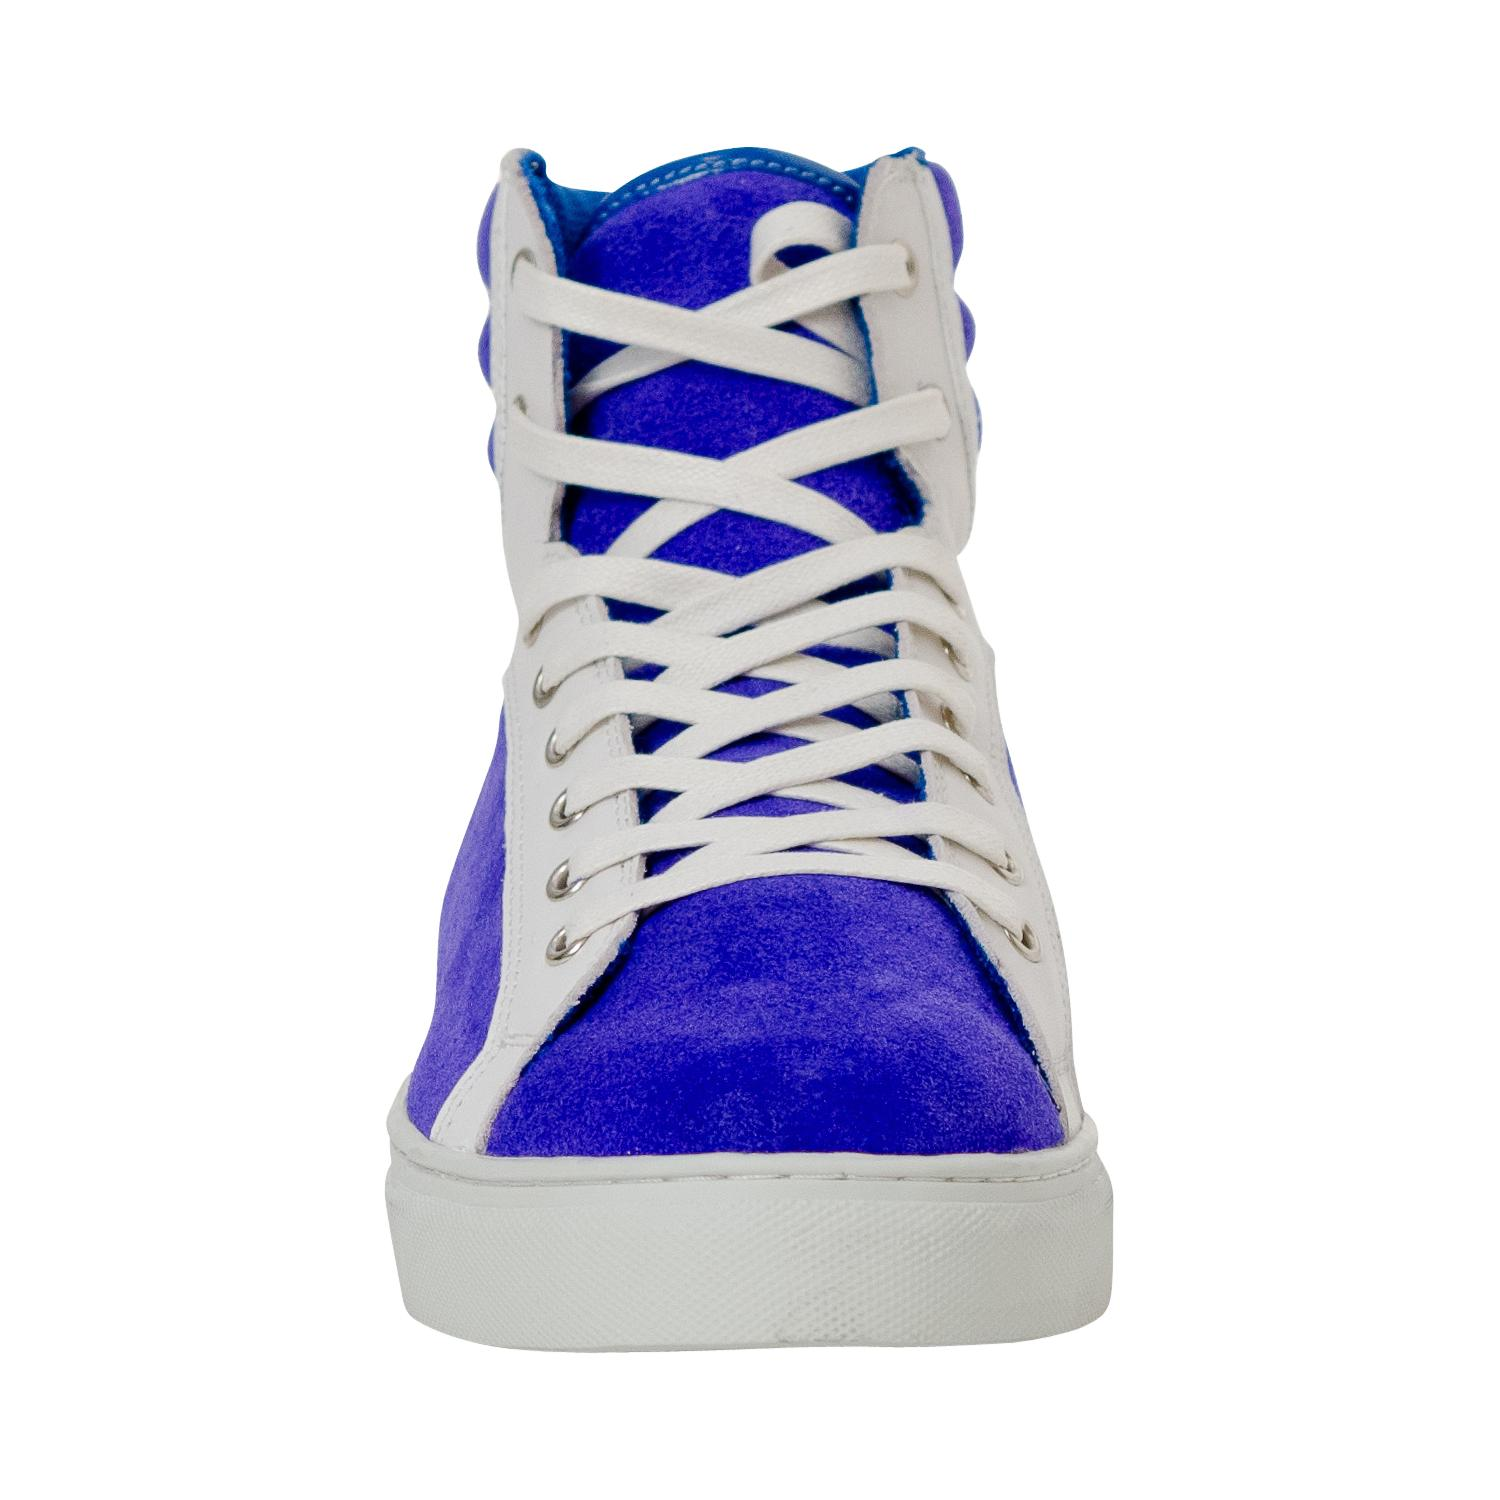 Shannon Royal Blue Two Tone Suede High Top Sneakers